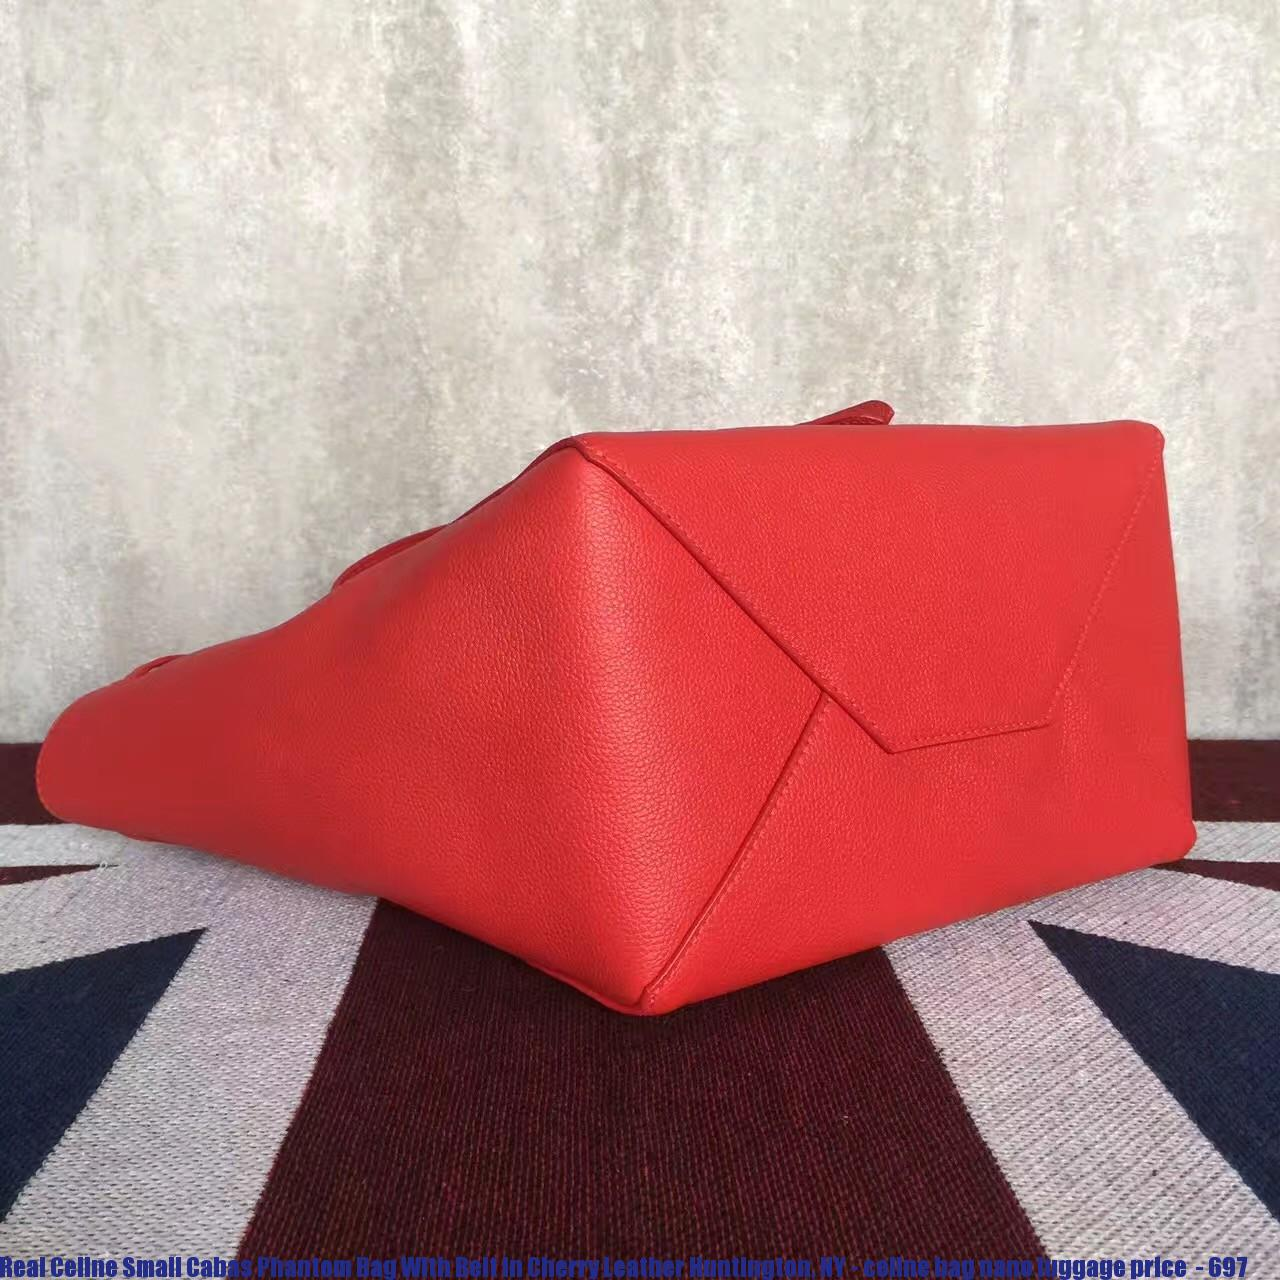 Real Celine Small Cabas Phantom Bag With Belt In Cherry Leather ... d0769f20a1